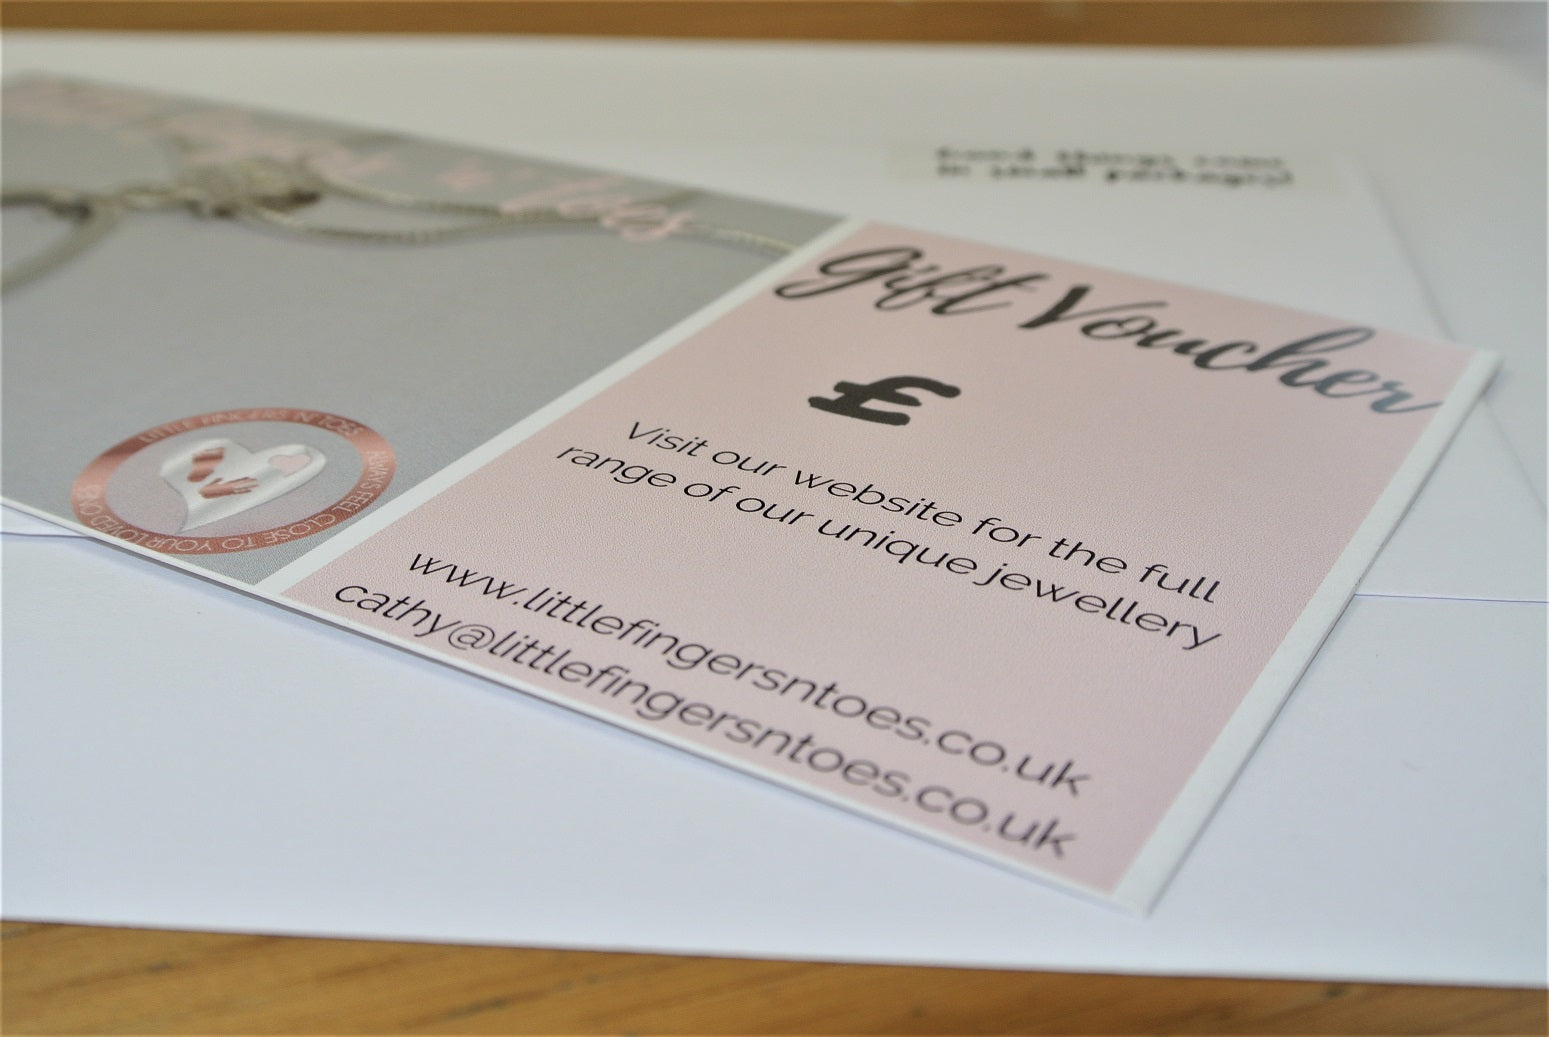 Little Fingers 'n' Toes Jewellery Gift Voucher Sterling Silver Fingerprint Jewellery